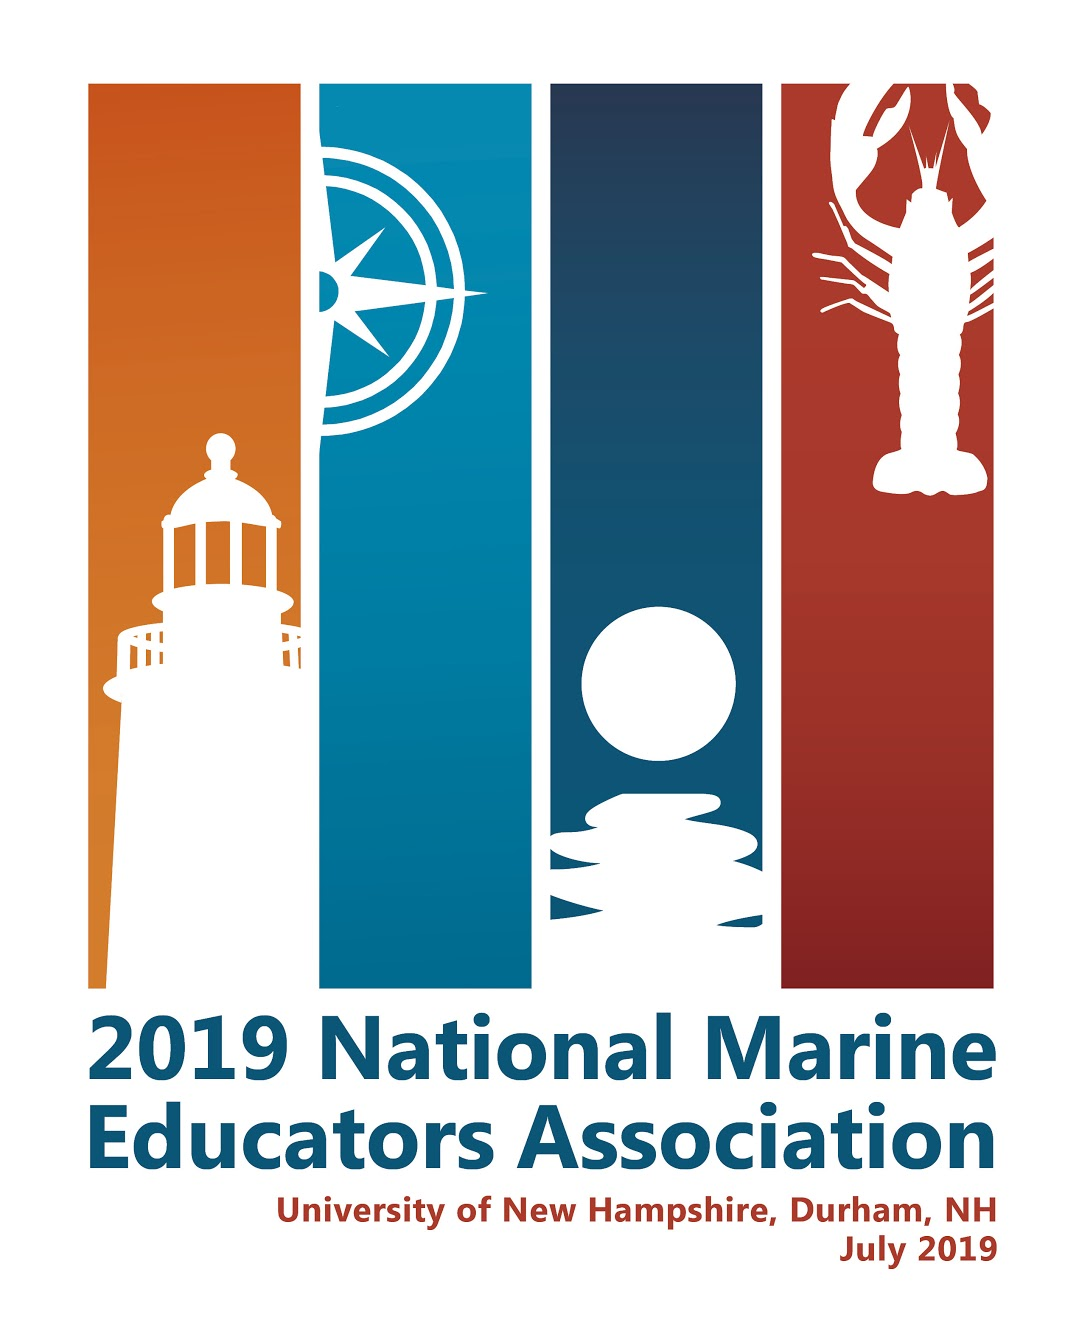 nmea 2019 logo with text.jpeg